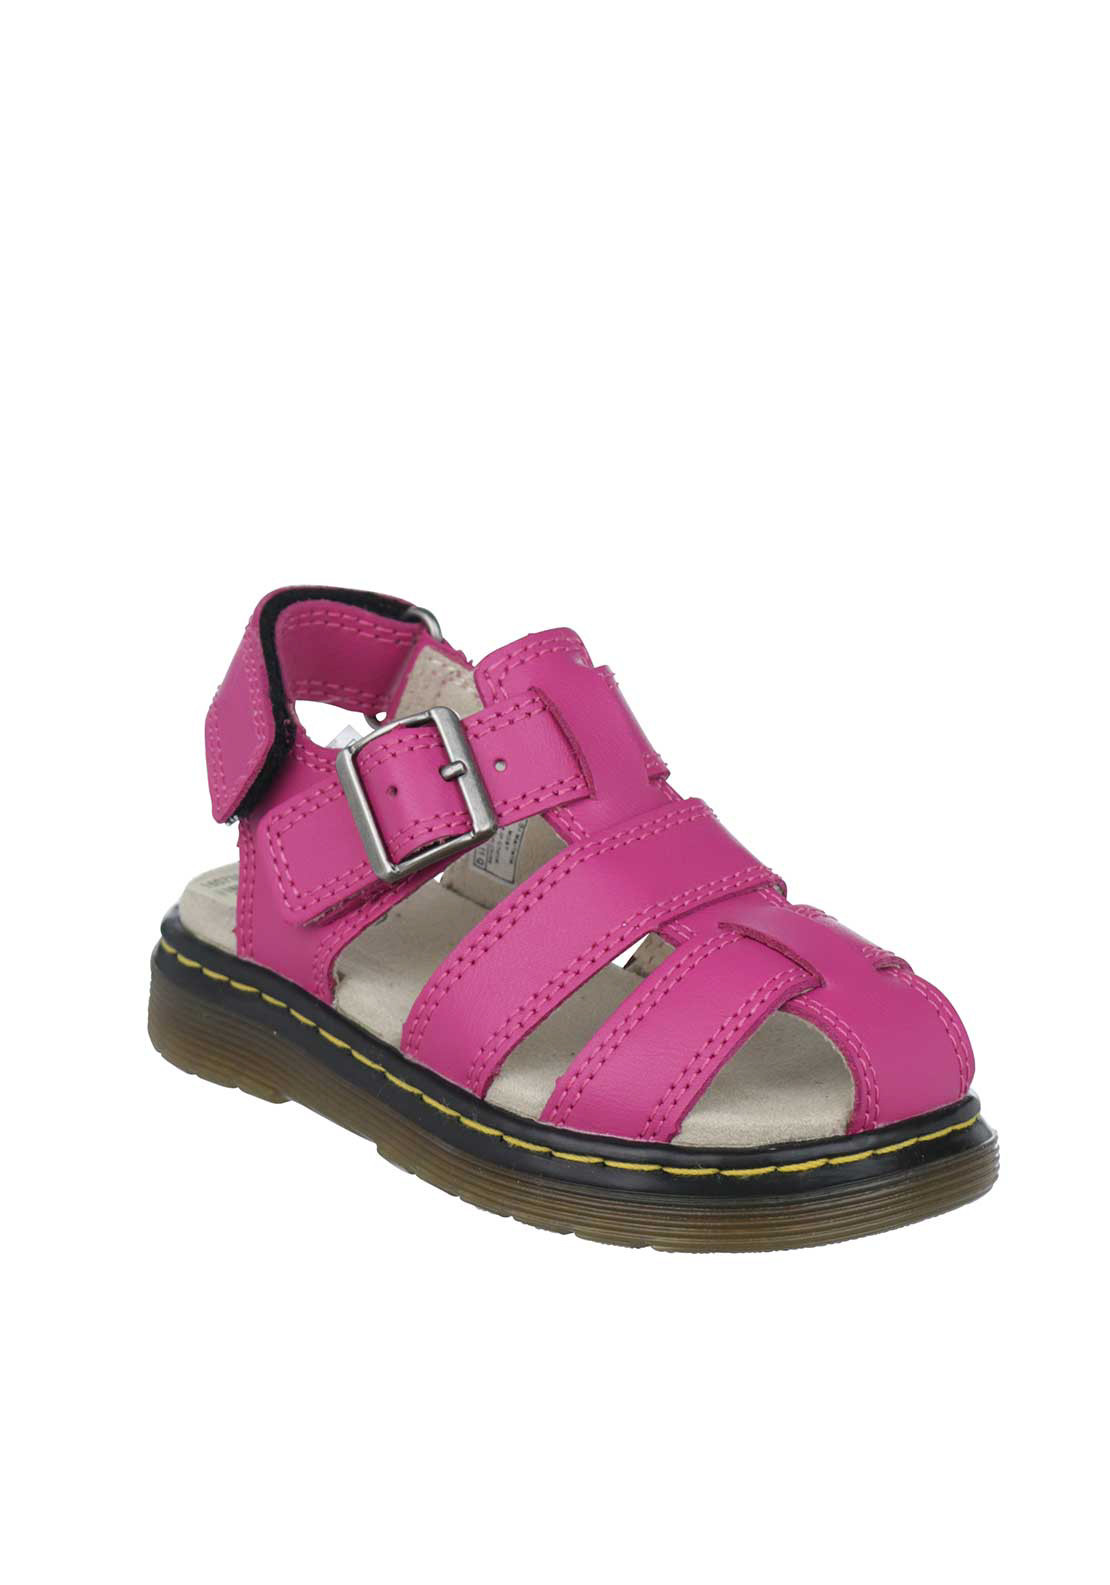 Dr. Martens Baby Girls Moby Leather Sandals, Pink